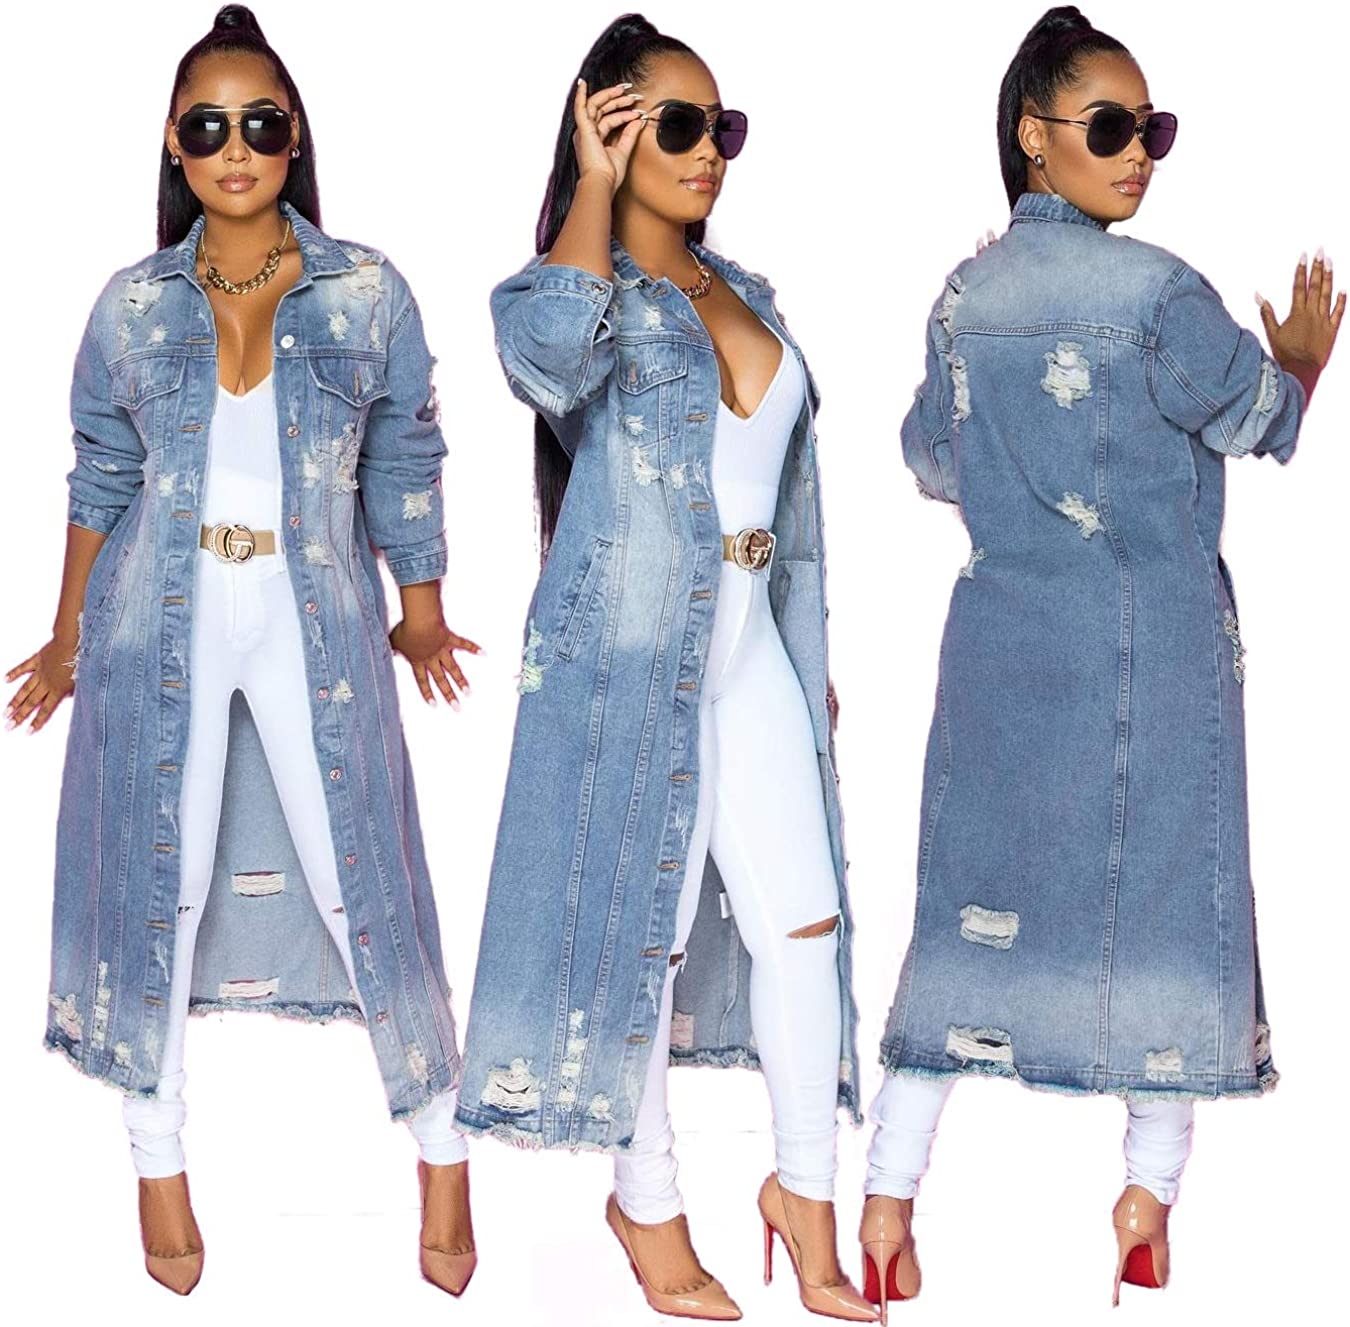 Alilyol Maxi Long Denim Jacket Trench Coat for Women,2021 New Distressed Hole Over Knee Midi Long Denim Jacket Trench Coat